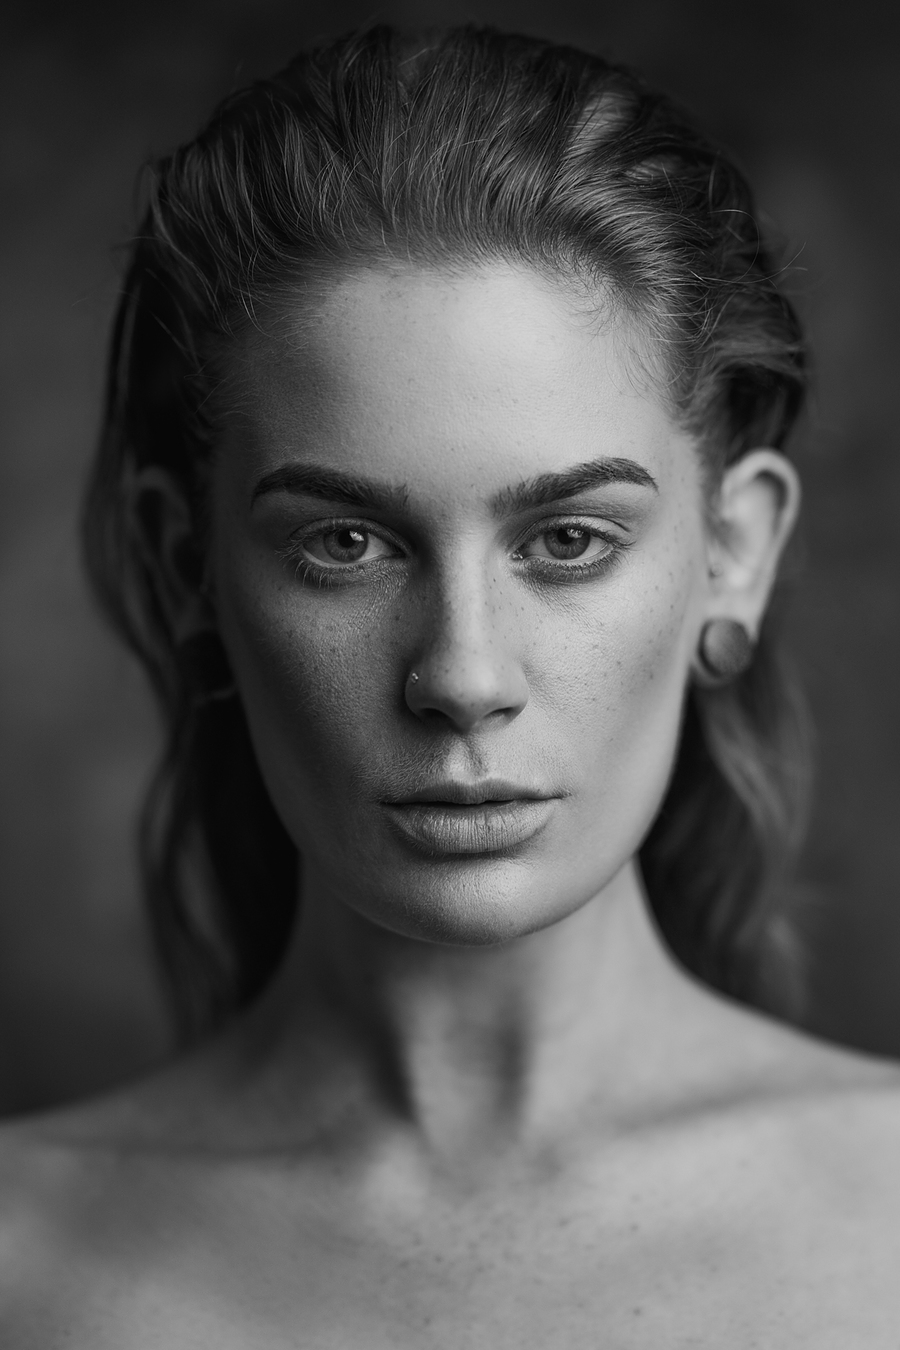 Bare / Photography by Eyas, Model Artemis Fauna, Makeup by Artemis Fauna / Uploaded 2nd January 2019 @ 04:43 PM